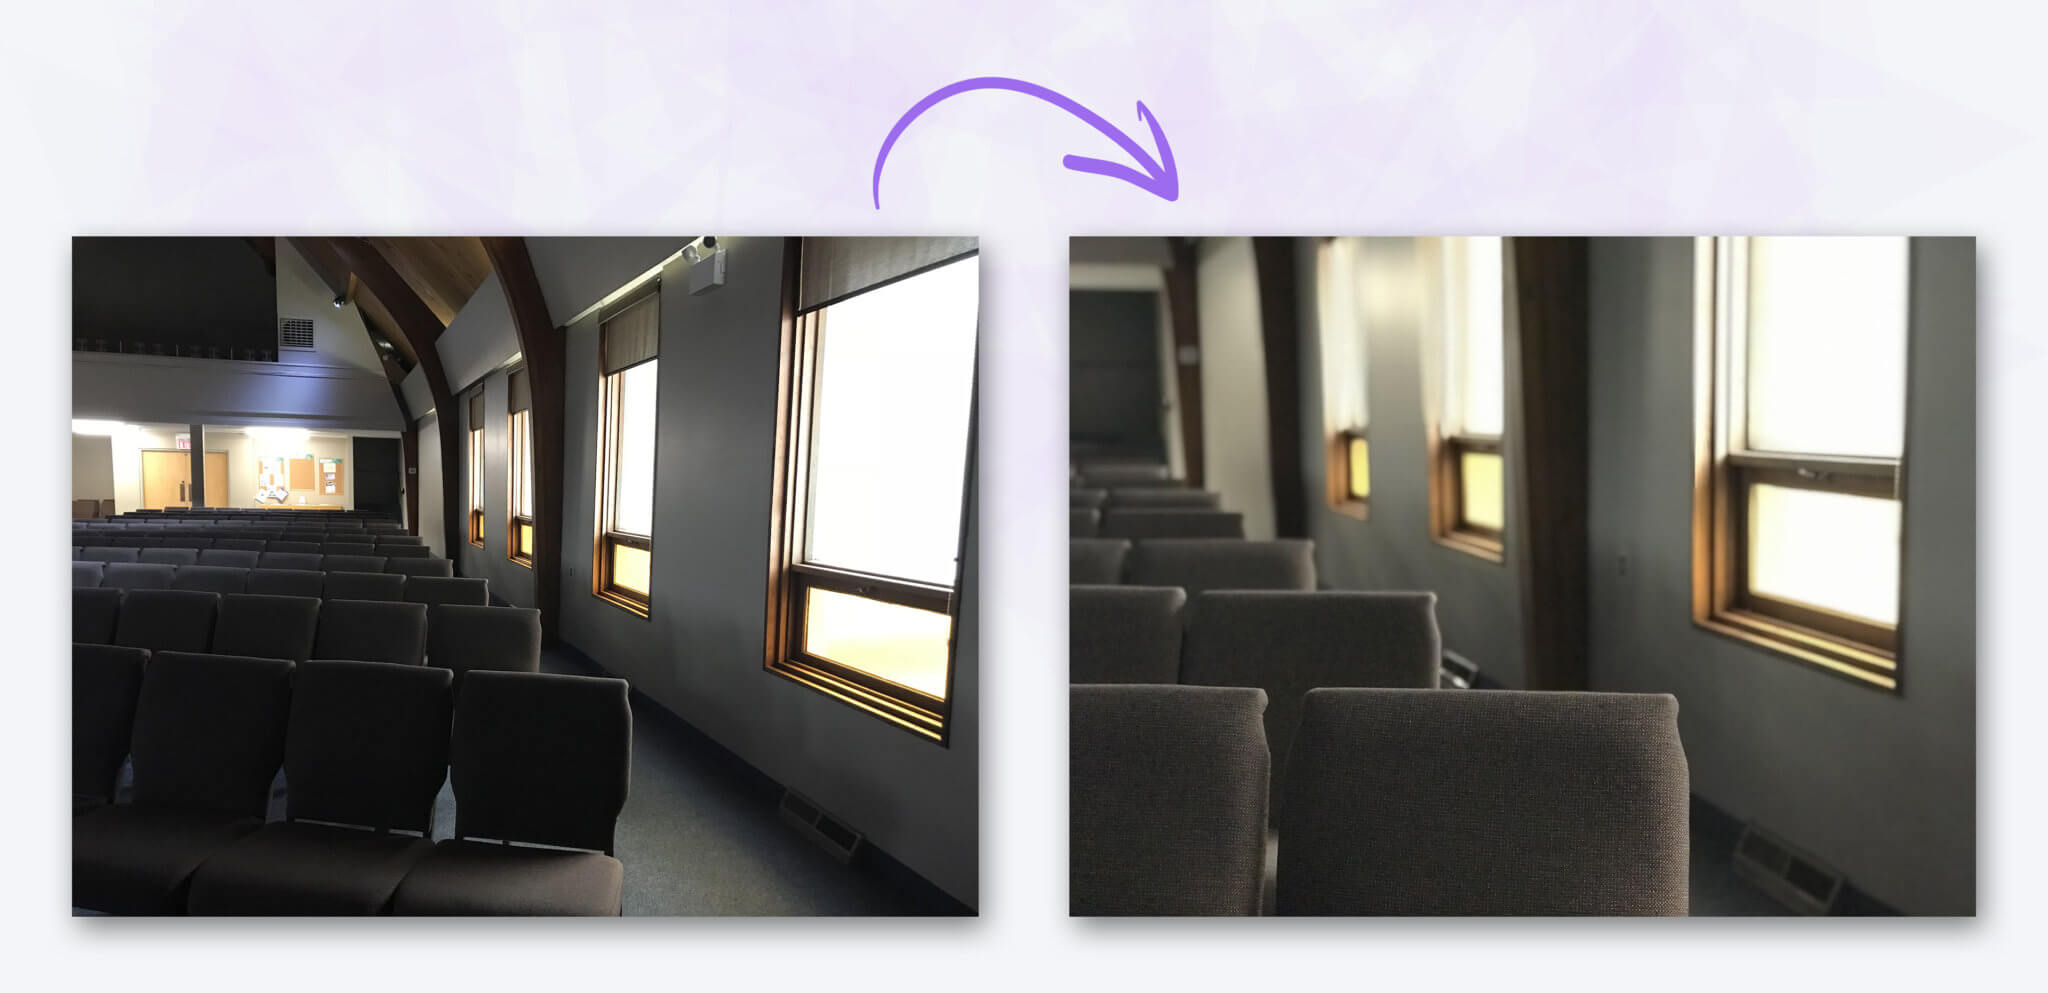 Before & After – Empty Seats Church Photos